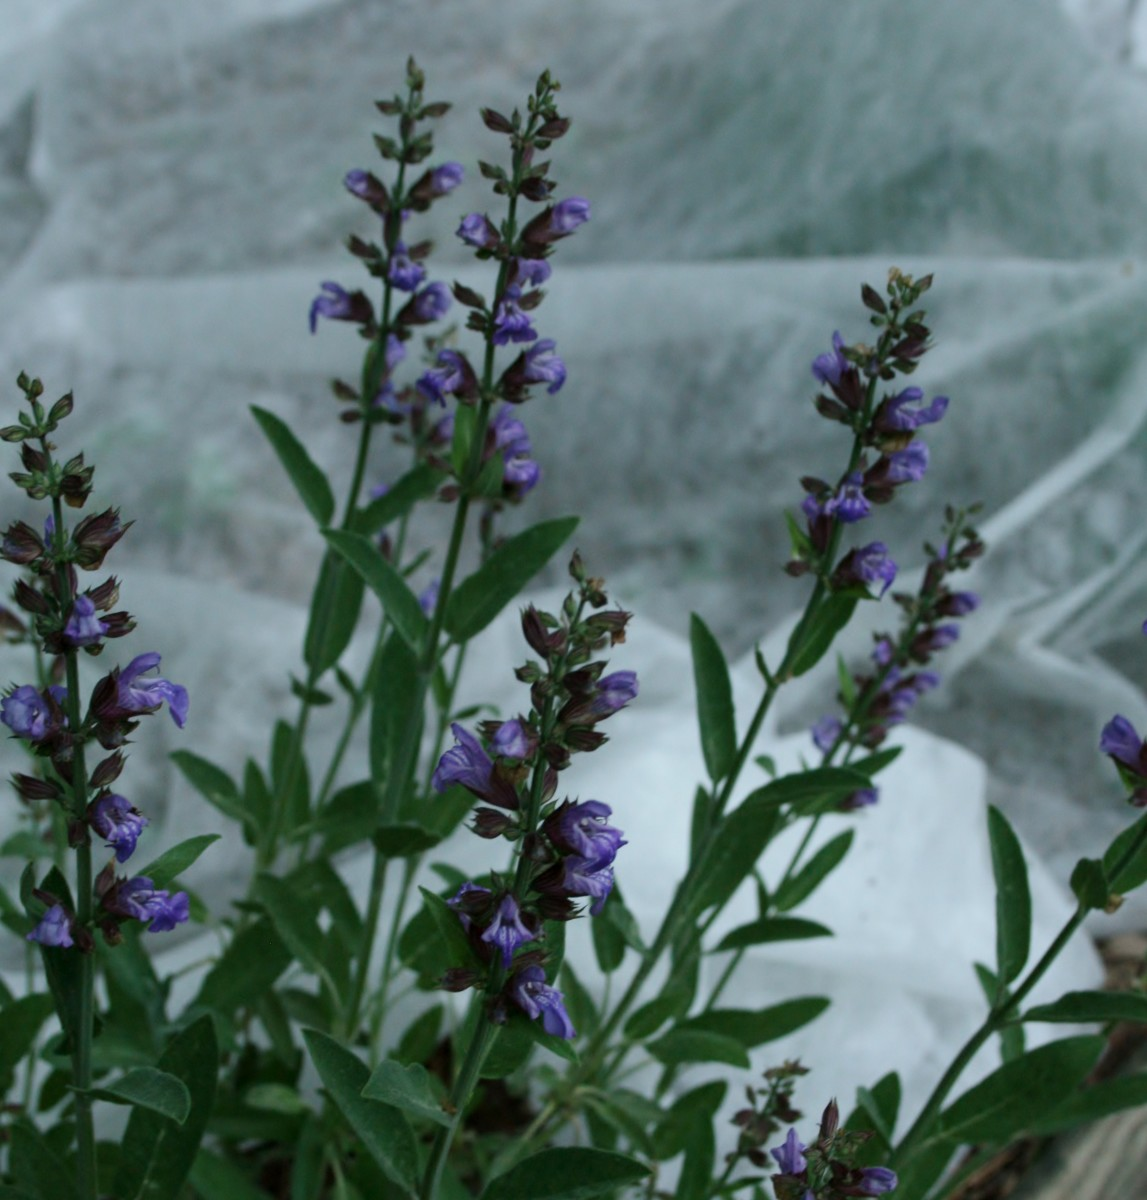 Sage in bloom against a background of Reemay over spring vegetables in our raised garden bed.